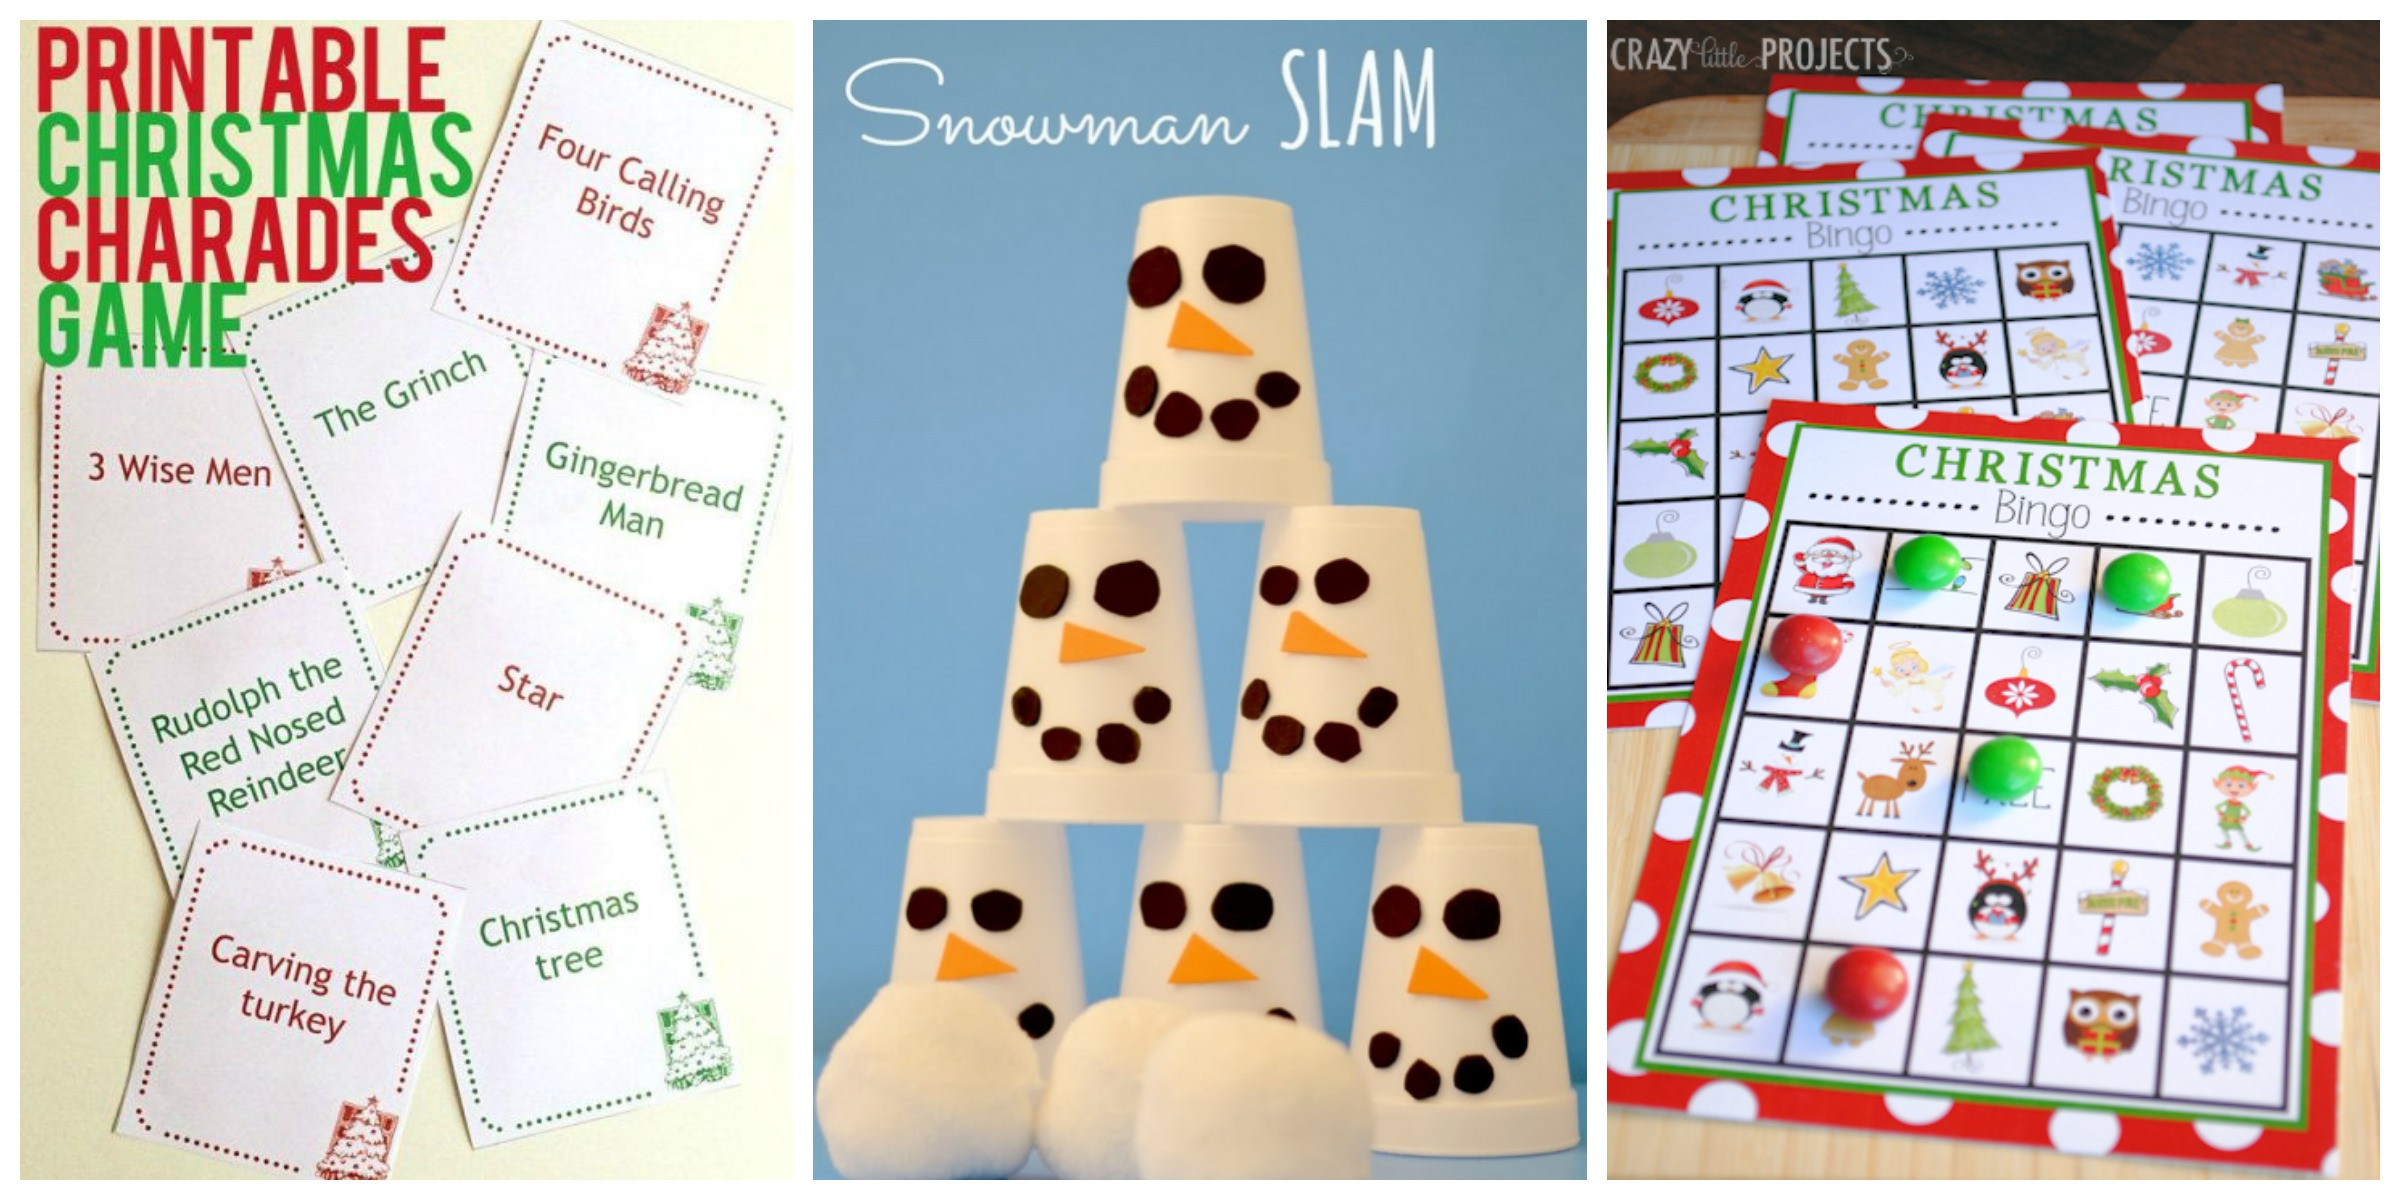 Christmas Party Game Ideas For Kids  17 Fun Christmas Party Games for Kids DIY Holiday Party